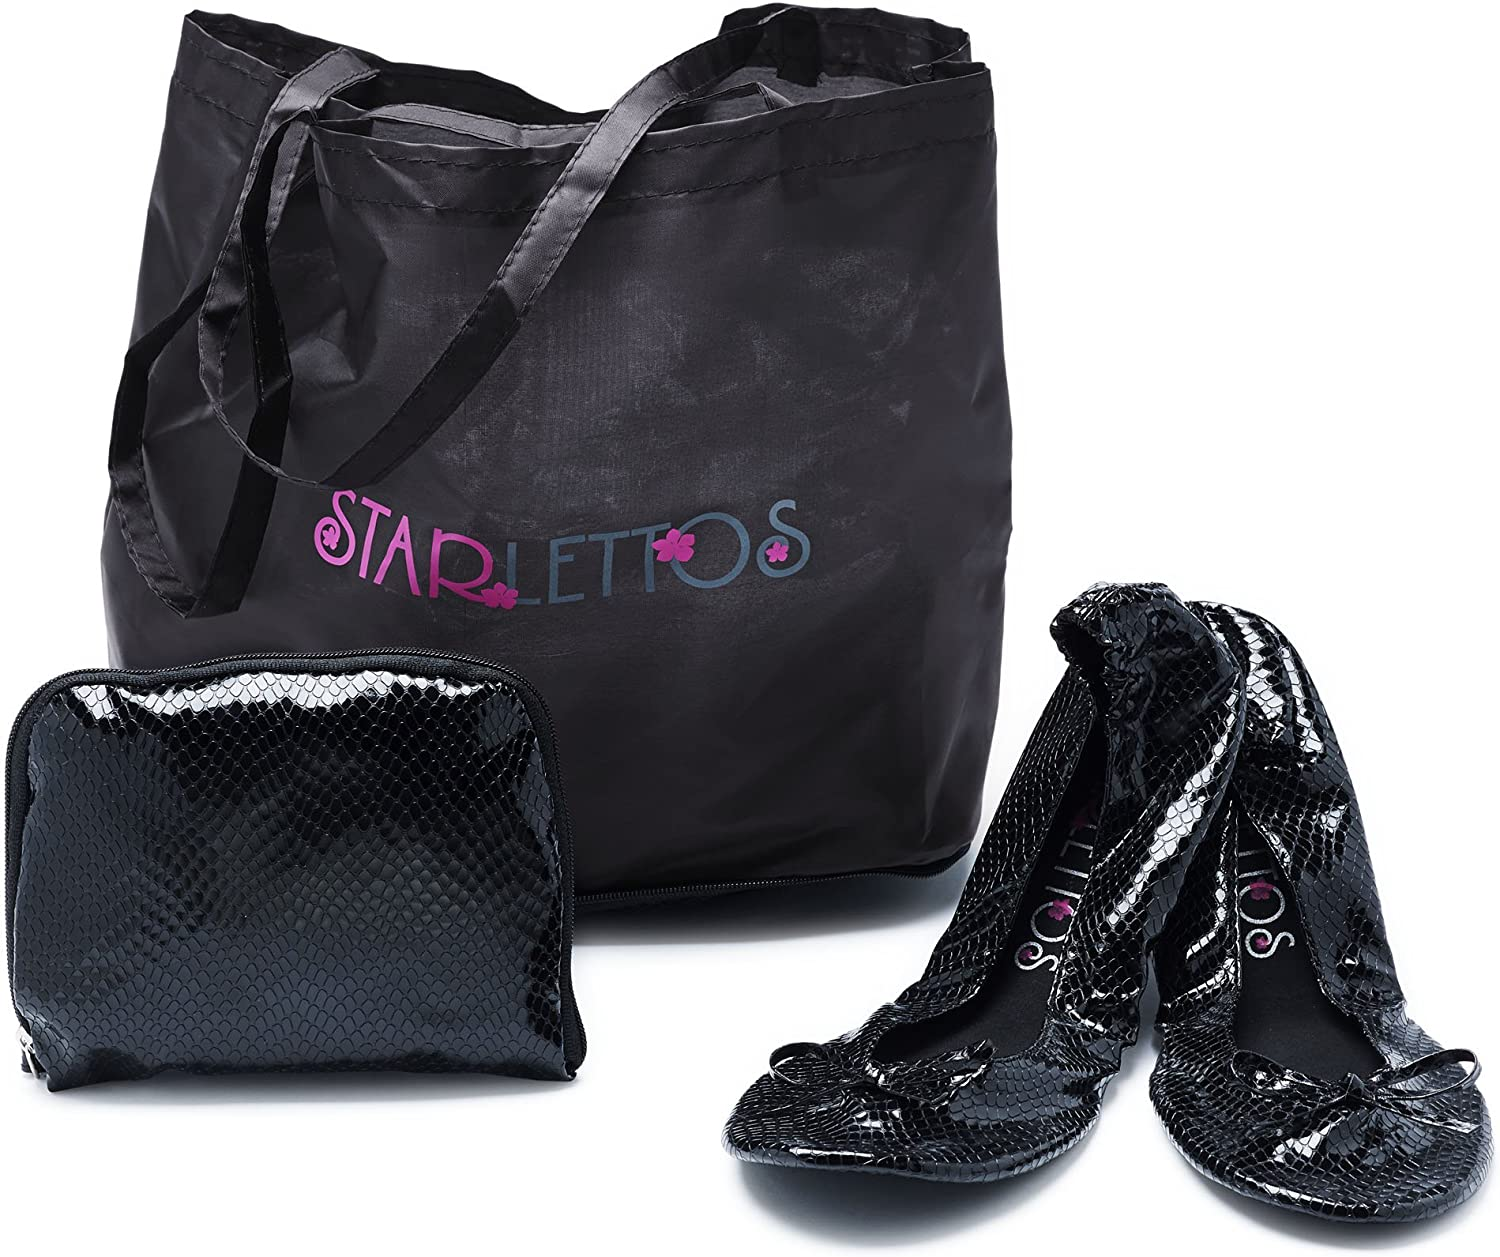 Foldable Ballet Flats - Cinderella Crystal Slippers to Carry You and Your High Heels Home Safely - Includes Ingenious Carry Pouch That Opens Into a shoes Carrier, See color Options